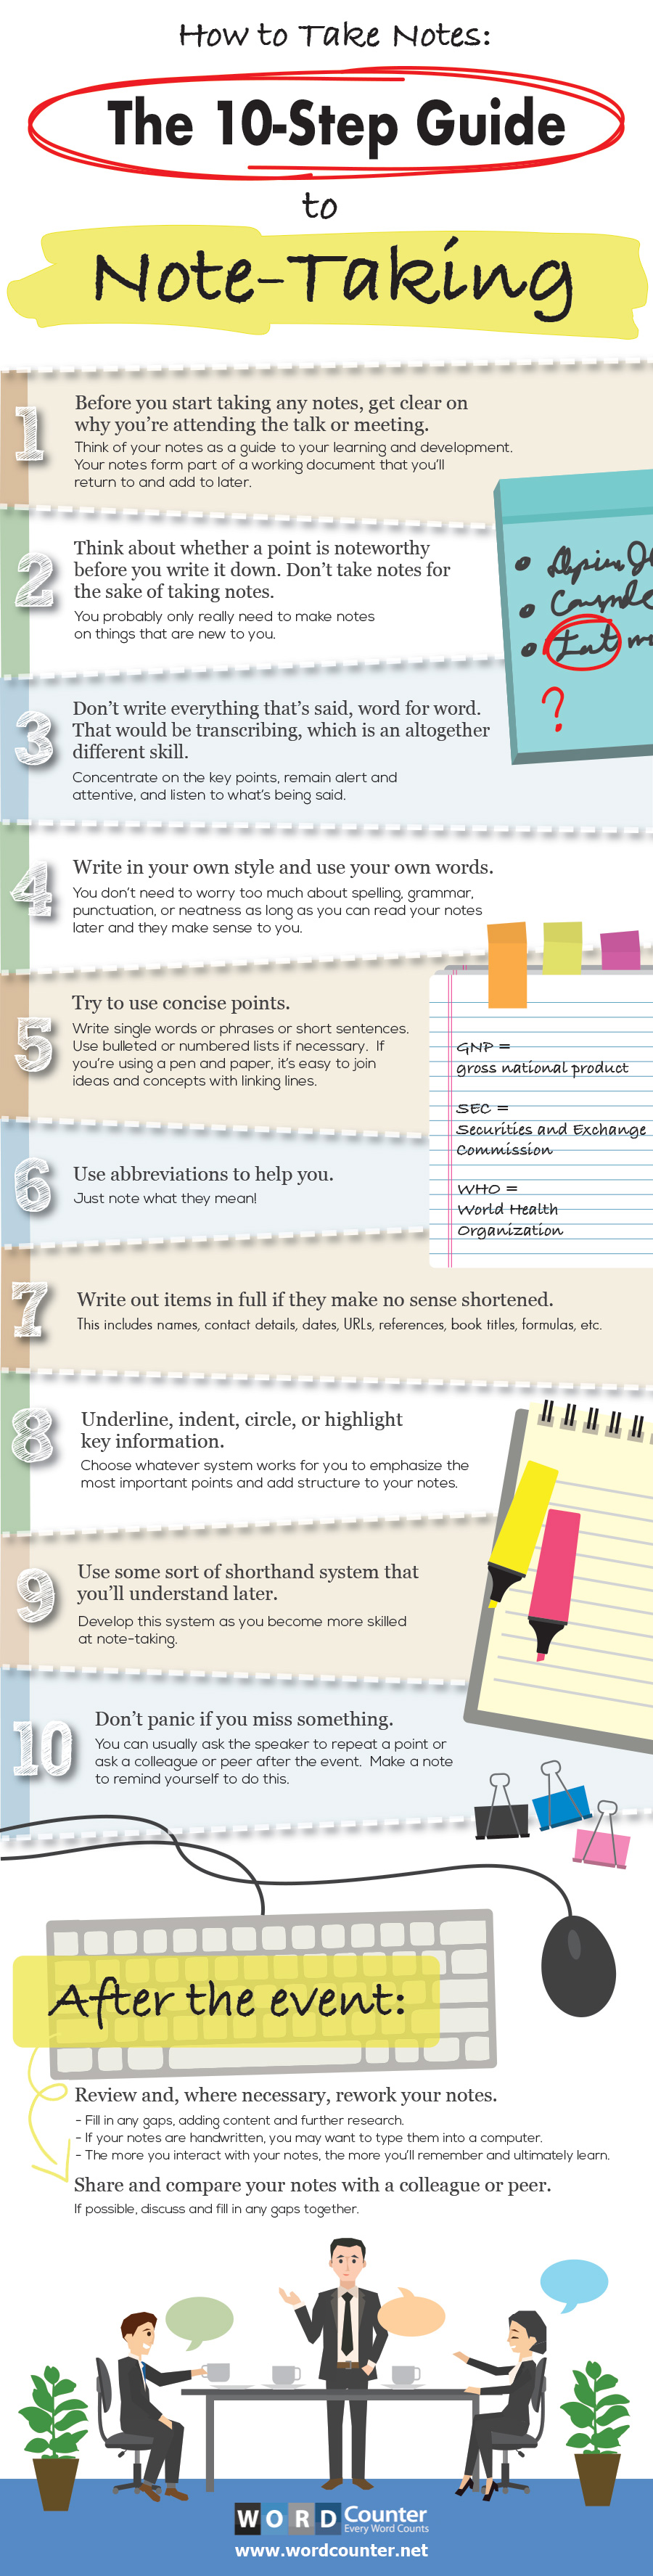 The 10-Step Guide To Taking Notes